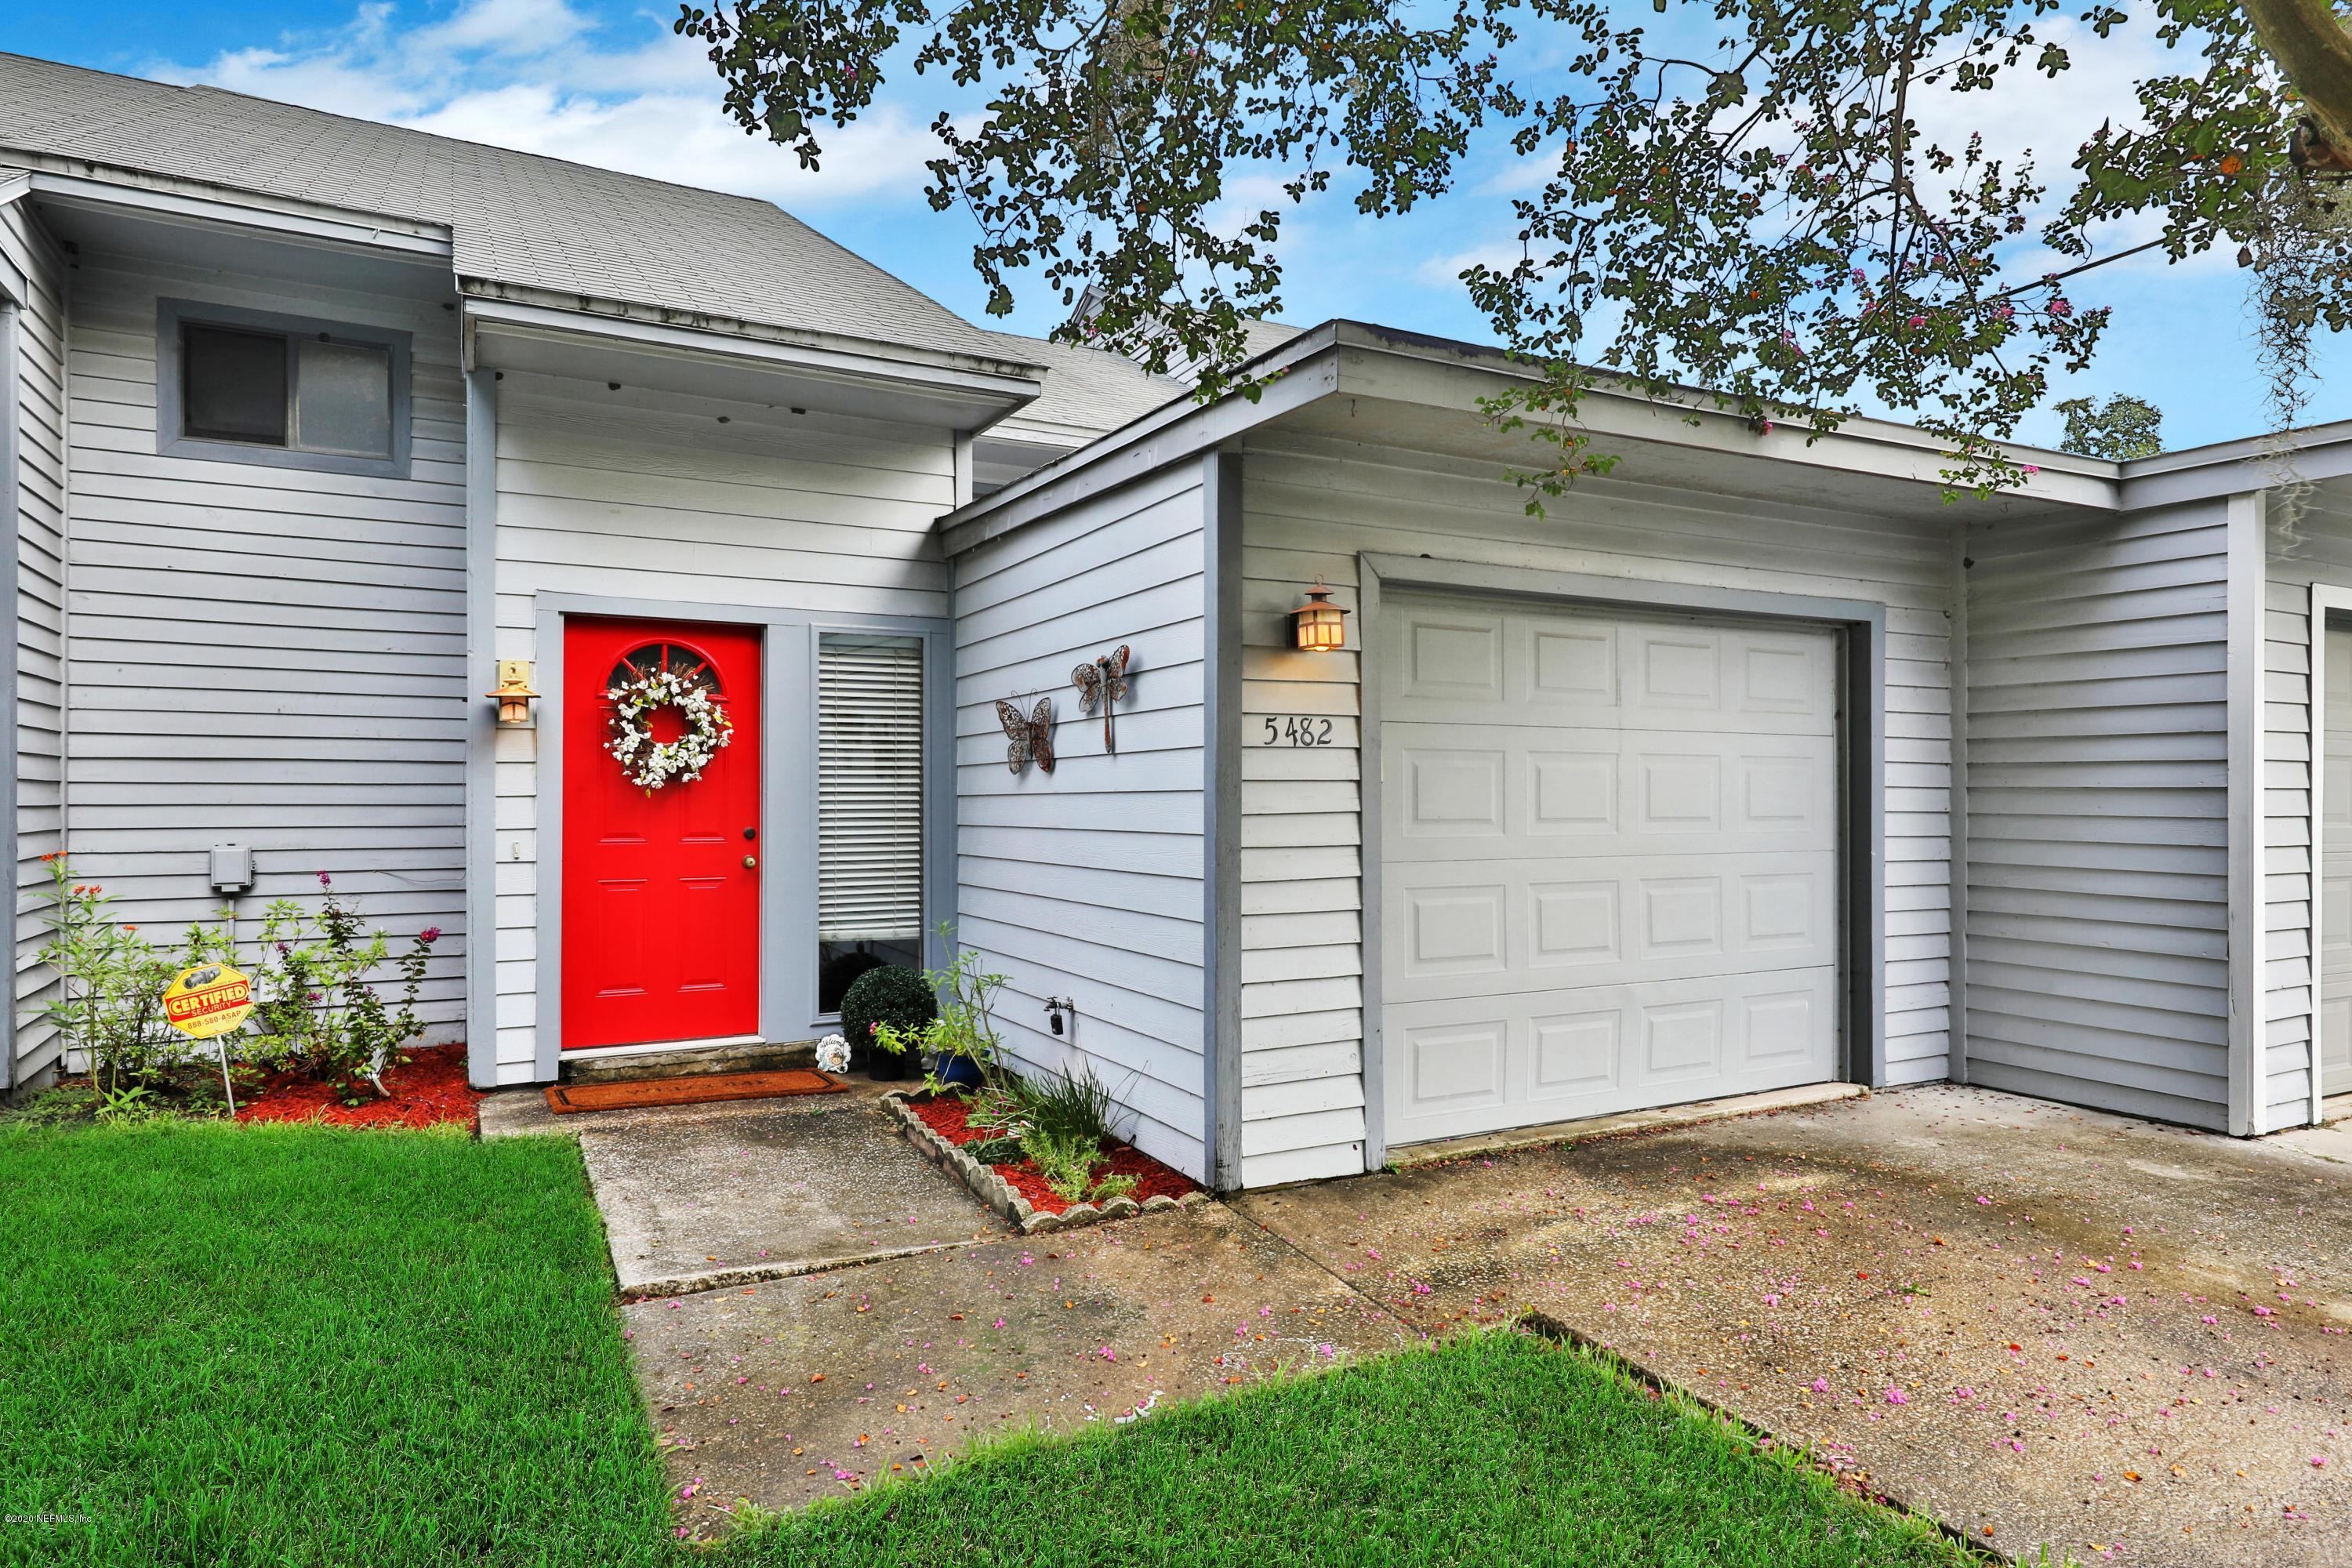 5482 STANFORD, JACKSONVILLE, FLORIDA 32207, 2 Bedrooms Bedrooms, ,2 BathroomsBathrooms,Residential,For sale,STANFORD,1079810